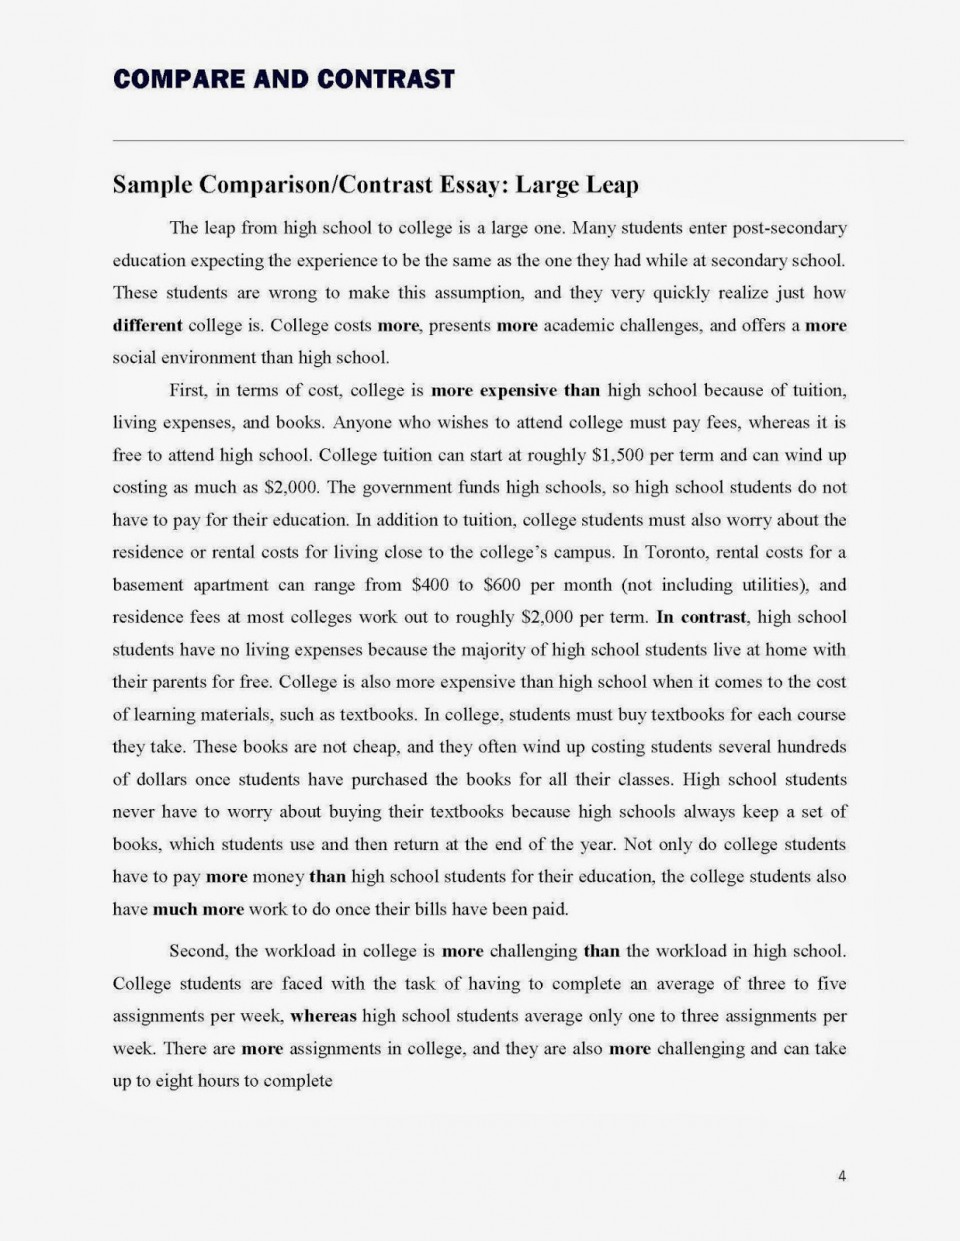 011 Compare And Contrast Essay Compareandcontrastessay Page 4h125 Frightening Prompts 5th Grade Rubric College Ideas 12th 960